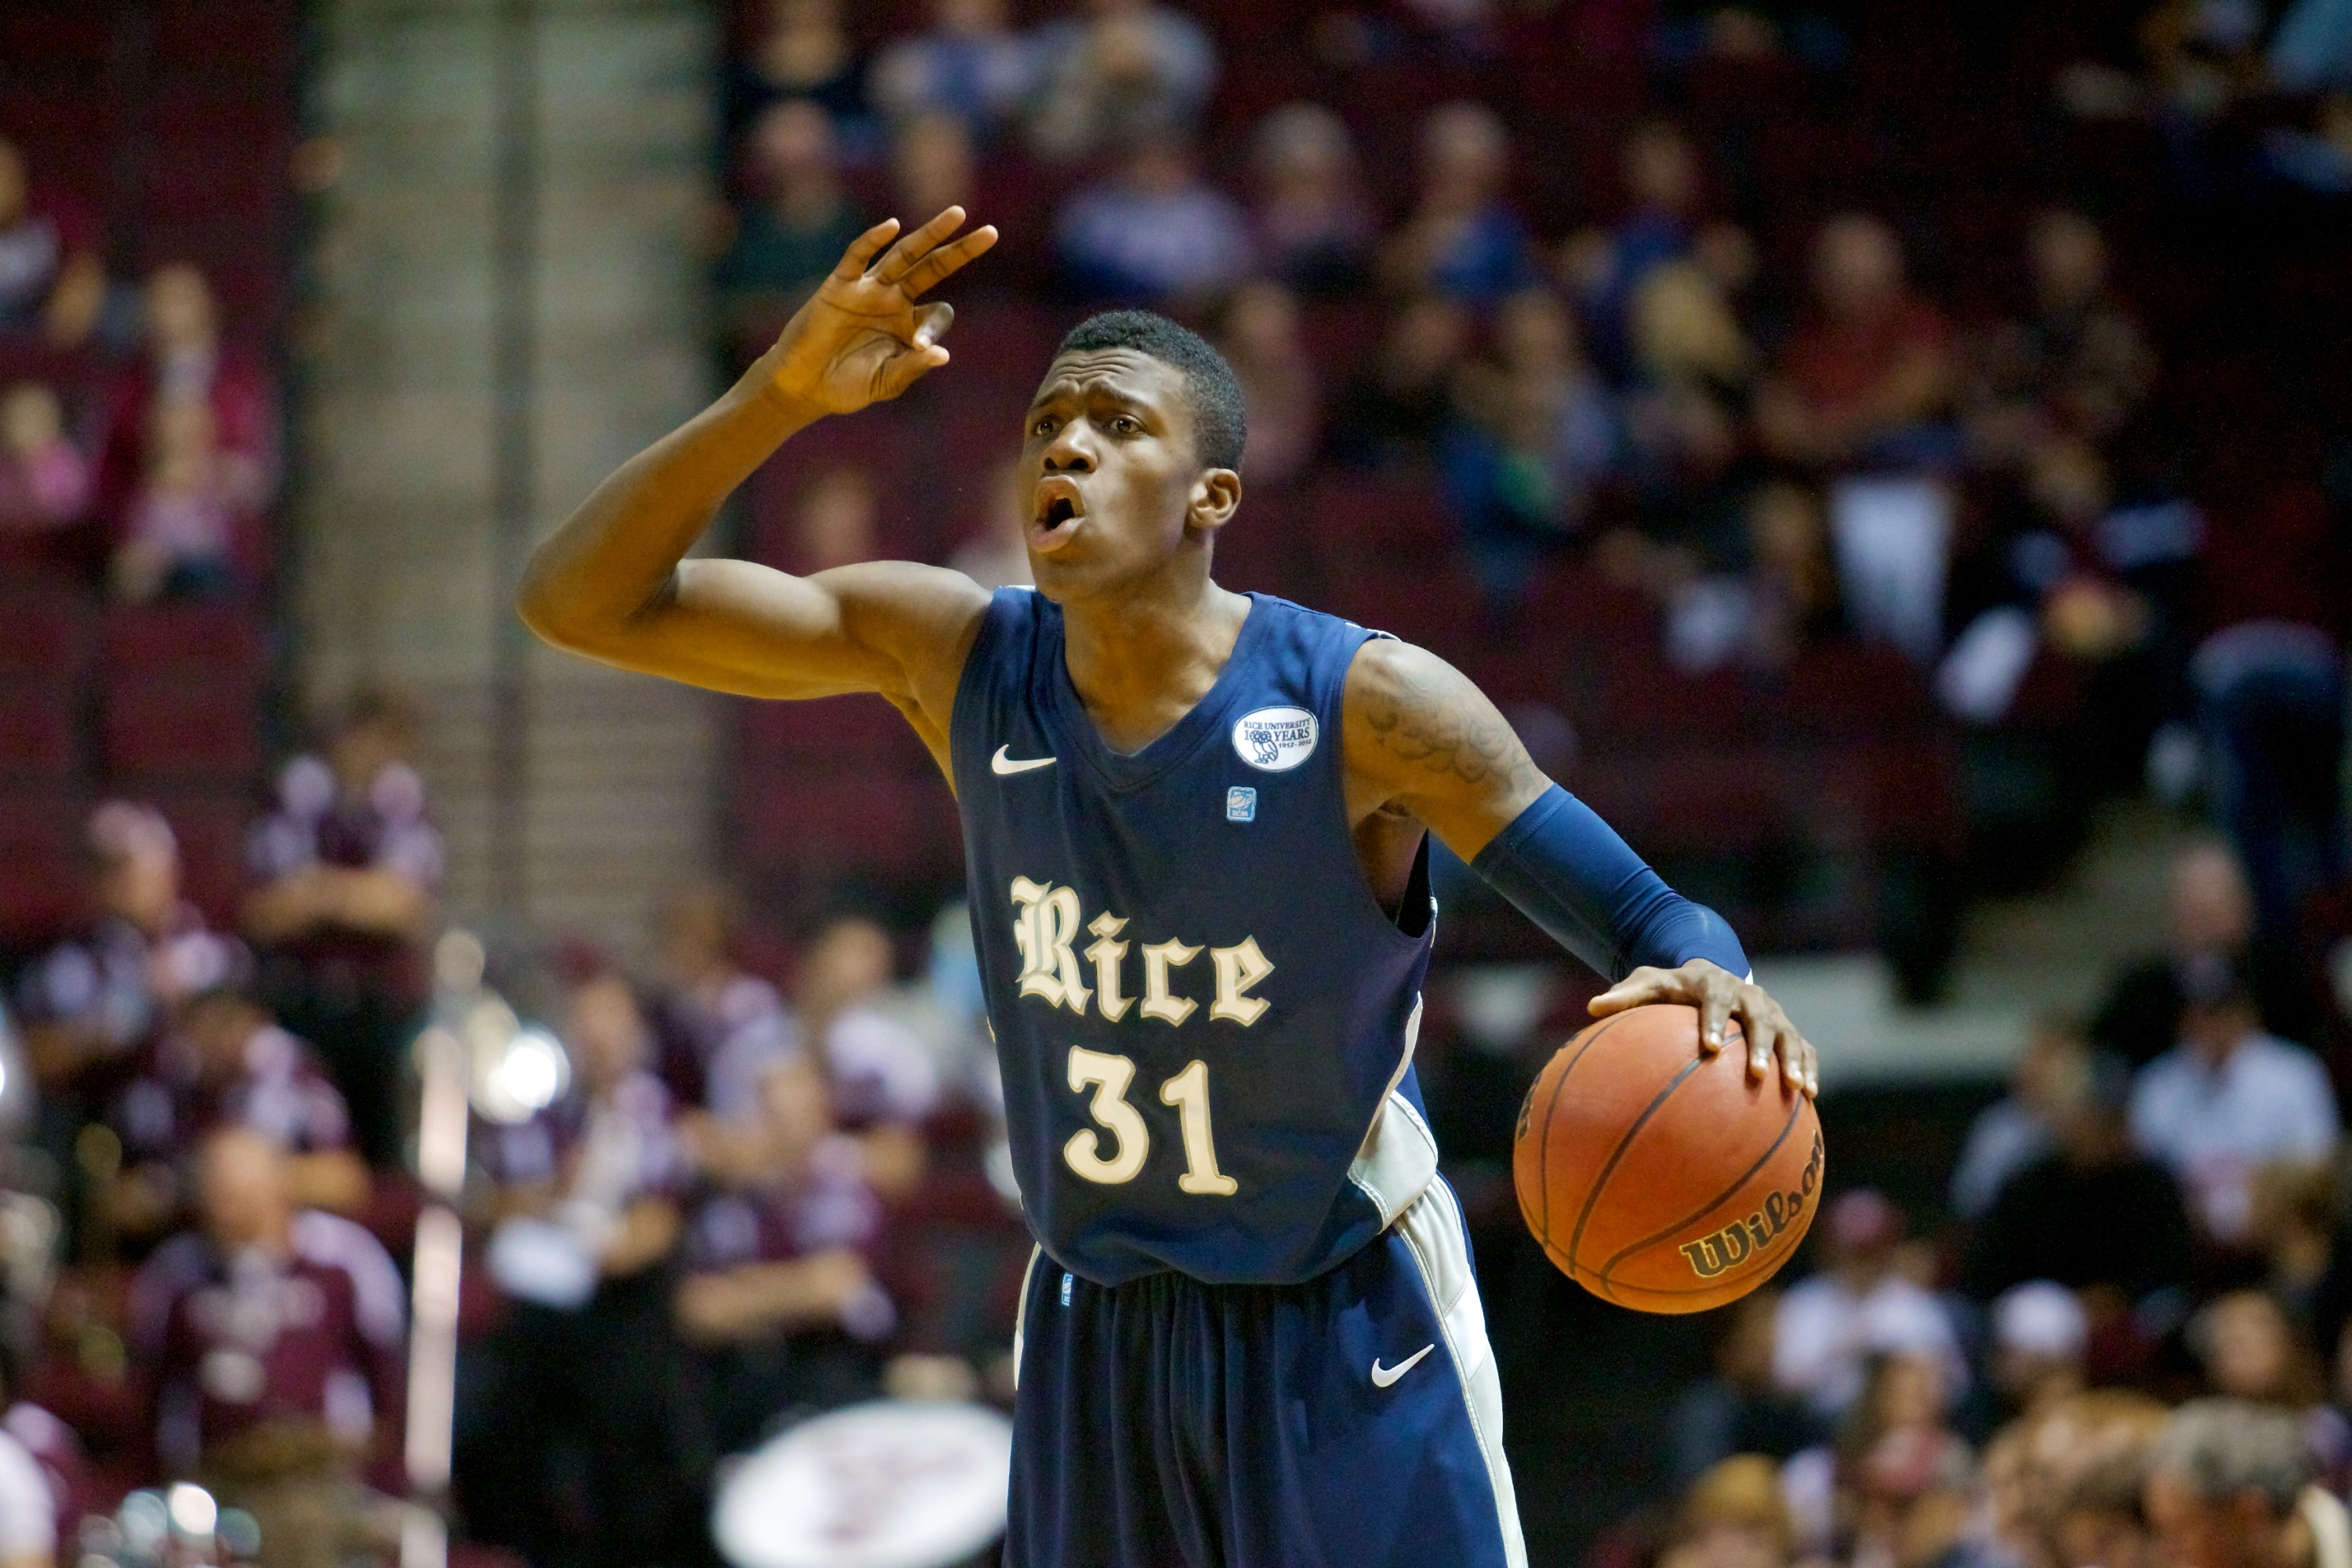 Dylan Ennis scored a career-high 18 points in the Owls' loss to TCU.